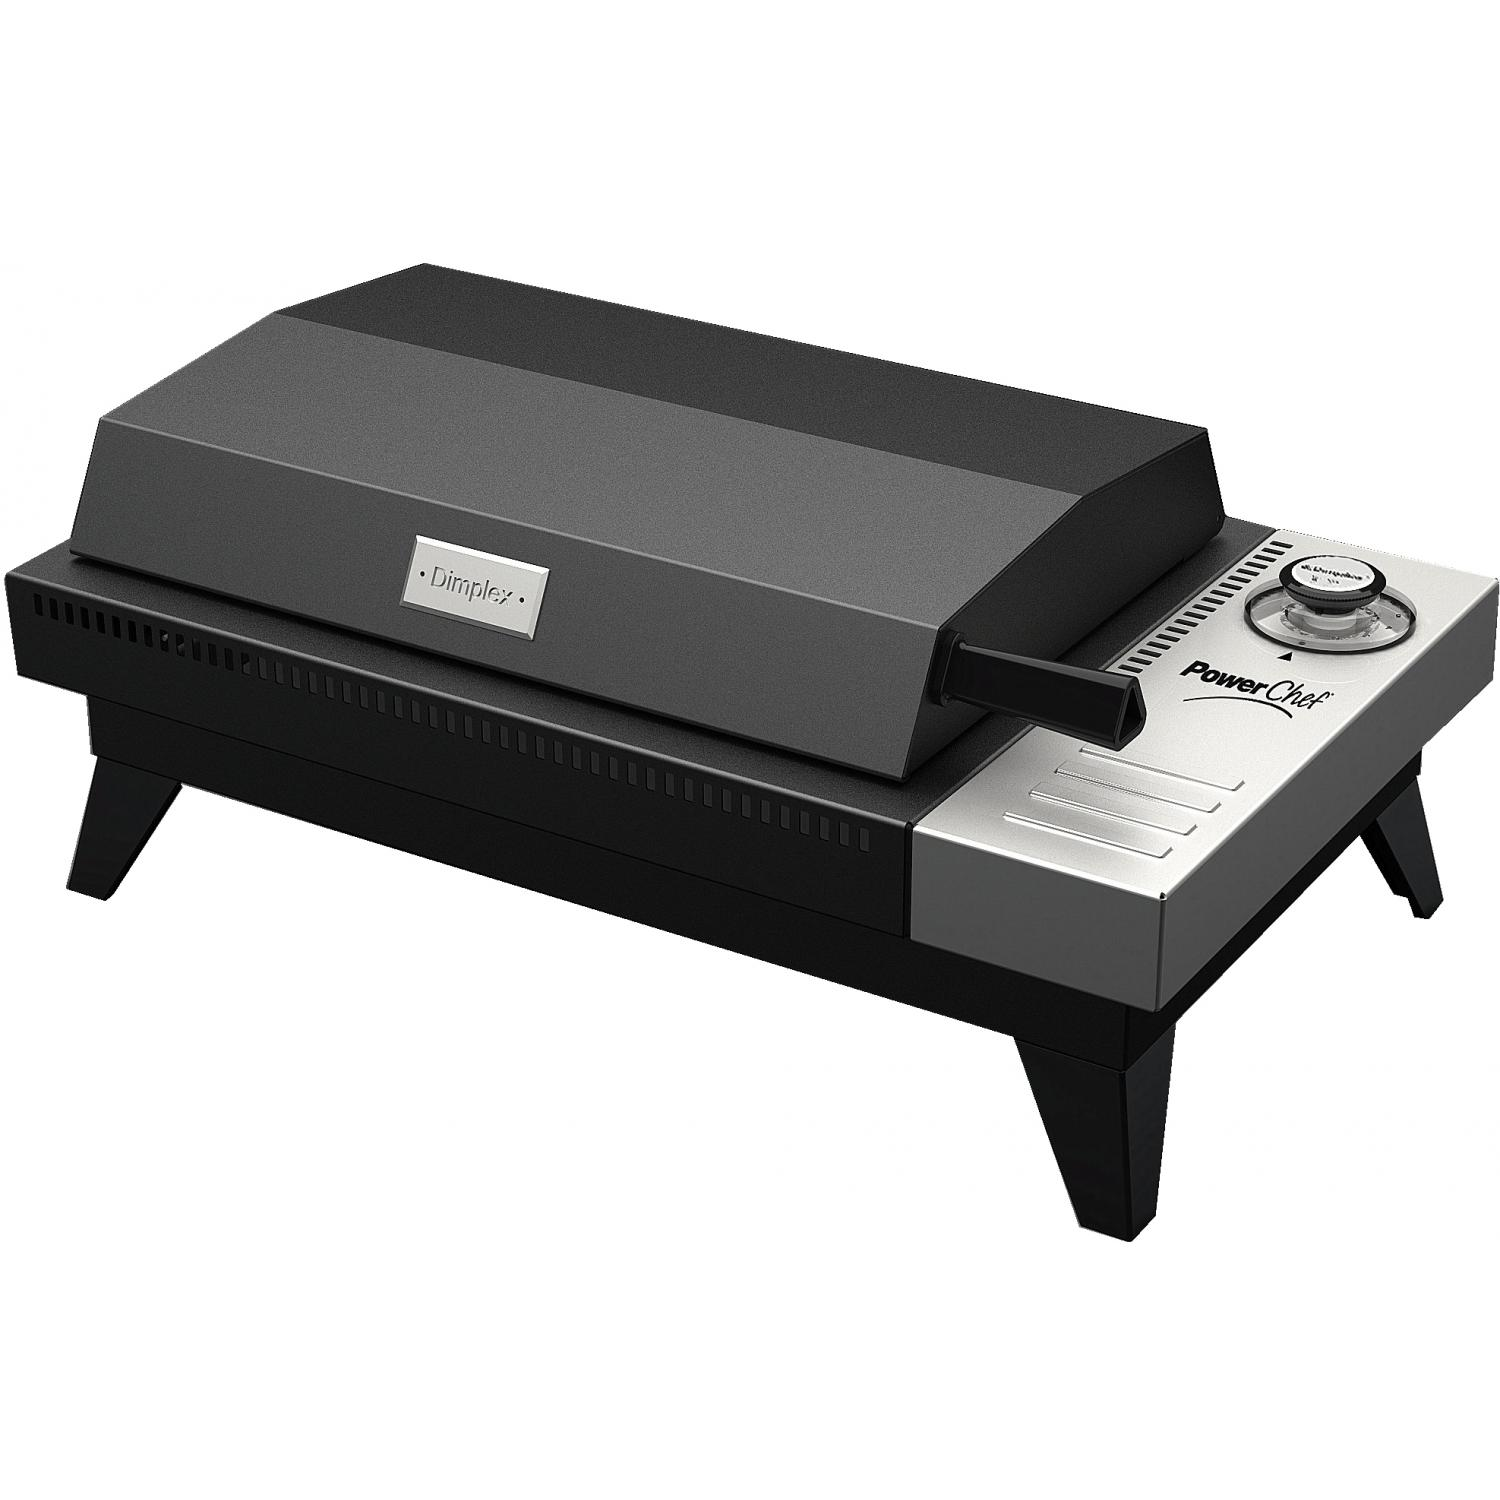 Dimplex PBQ120METRO 25-Inch PowerChef Metro Tabletop Electric Grill - Manual Control